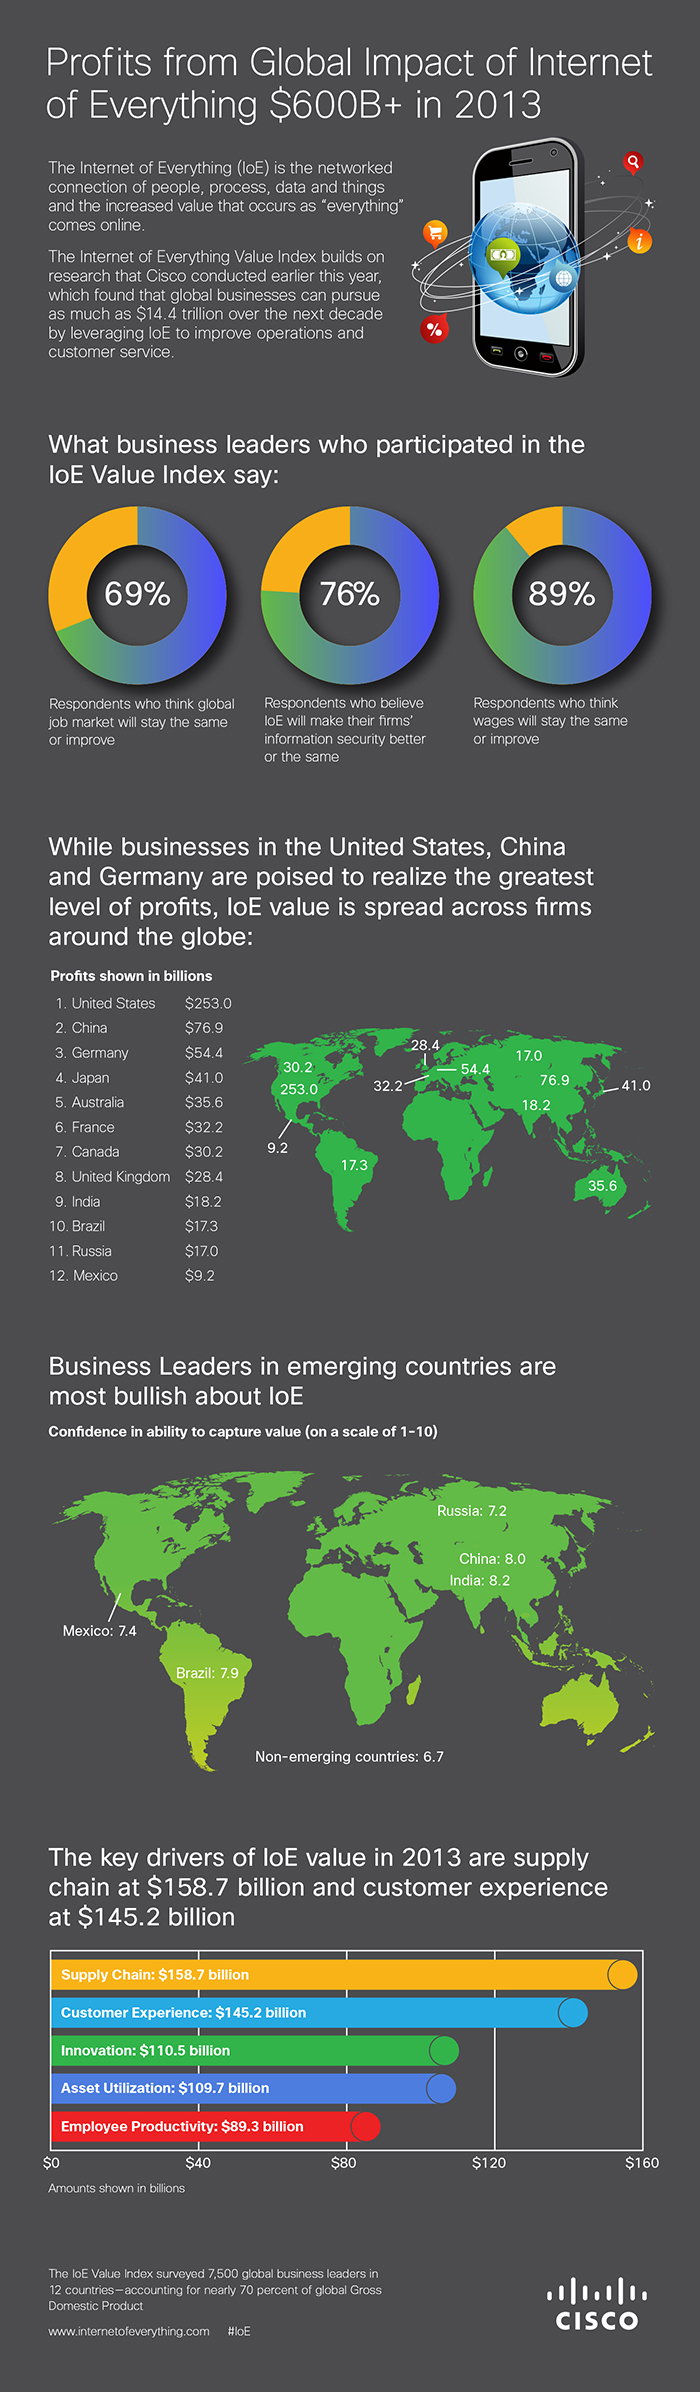 $613B in Global Profits from Internet of Everything in 2013